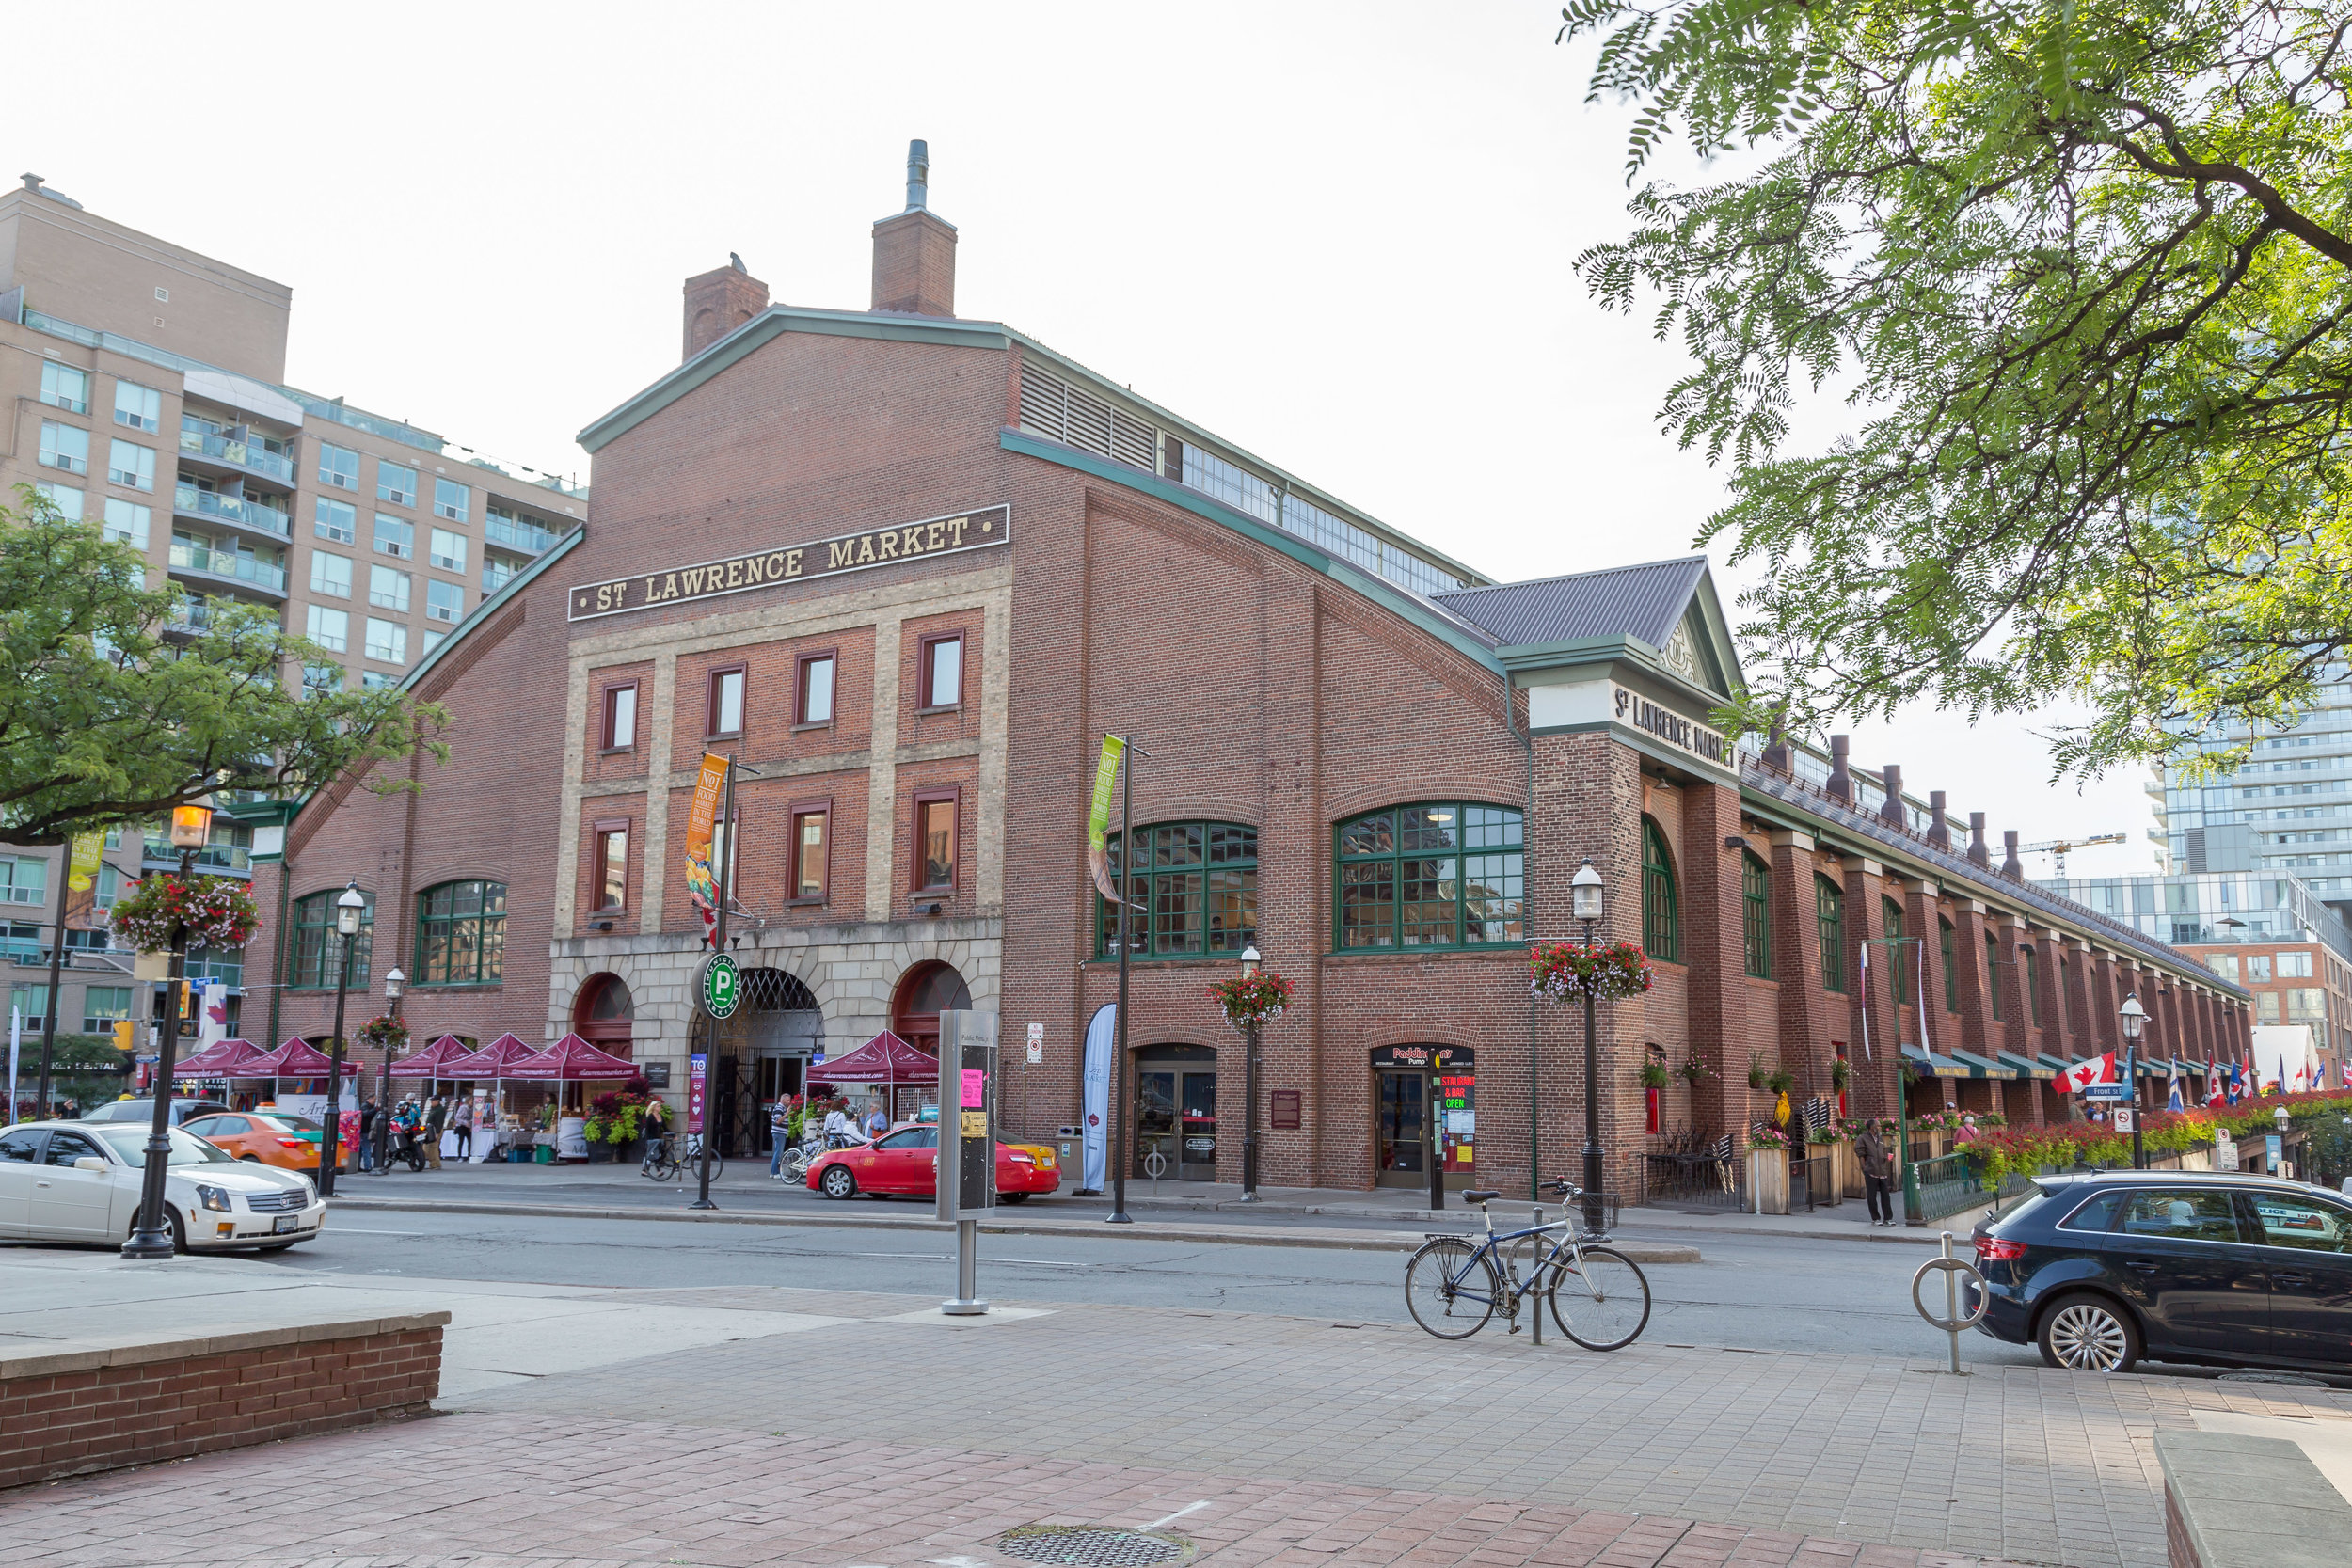 Visiting the  St. Lawrence Market  is a must! It has been ranked the best food market in the world. But with over a hundred vendors, it can be quite overwhelming.